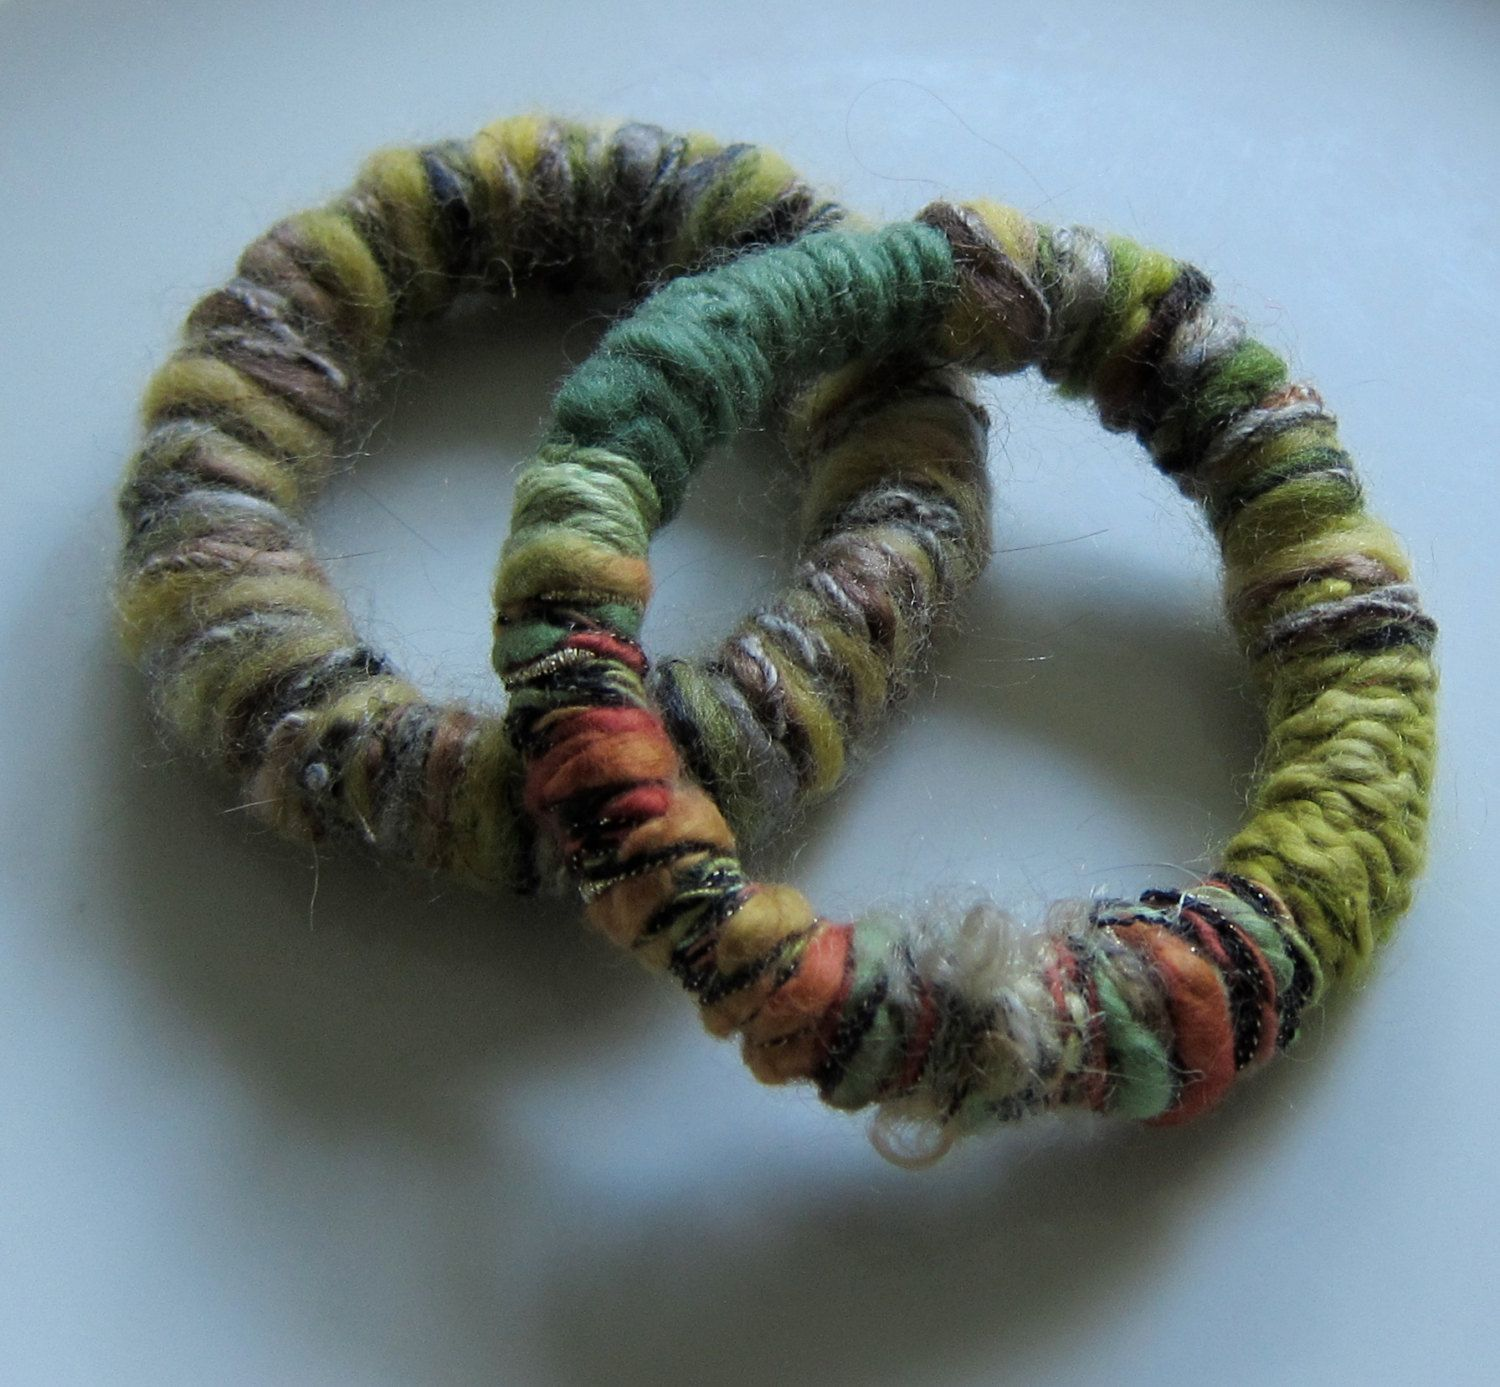 Soft Yarn Wrapped Bracelets Bangles in Shades of Green Eco-Chic. $14.00, via Etsy.